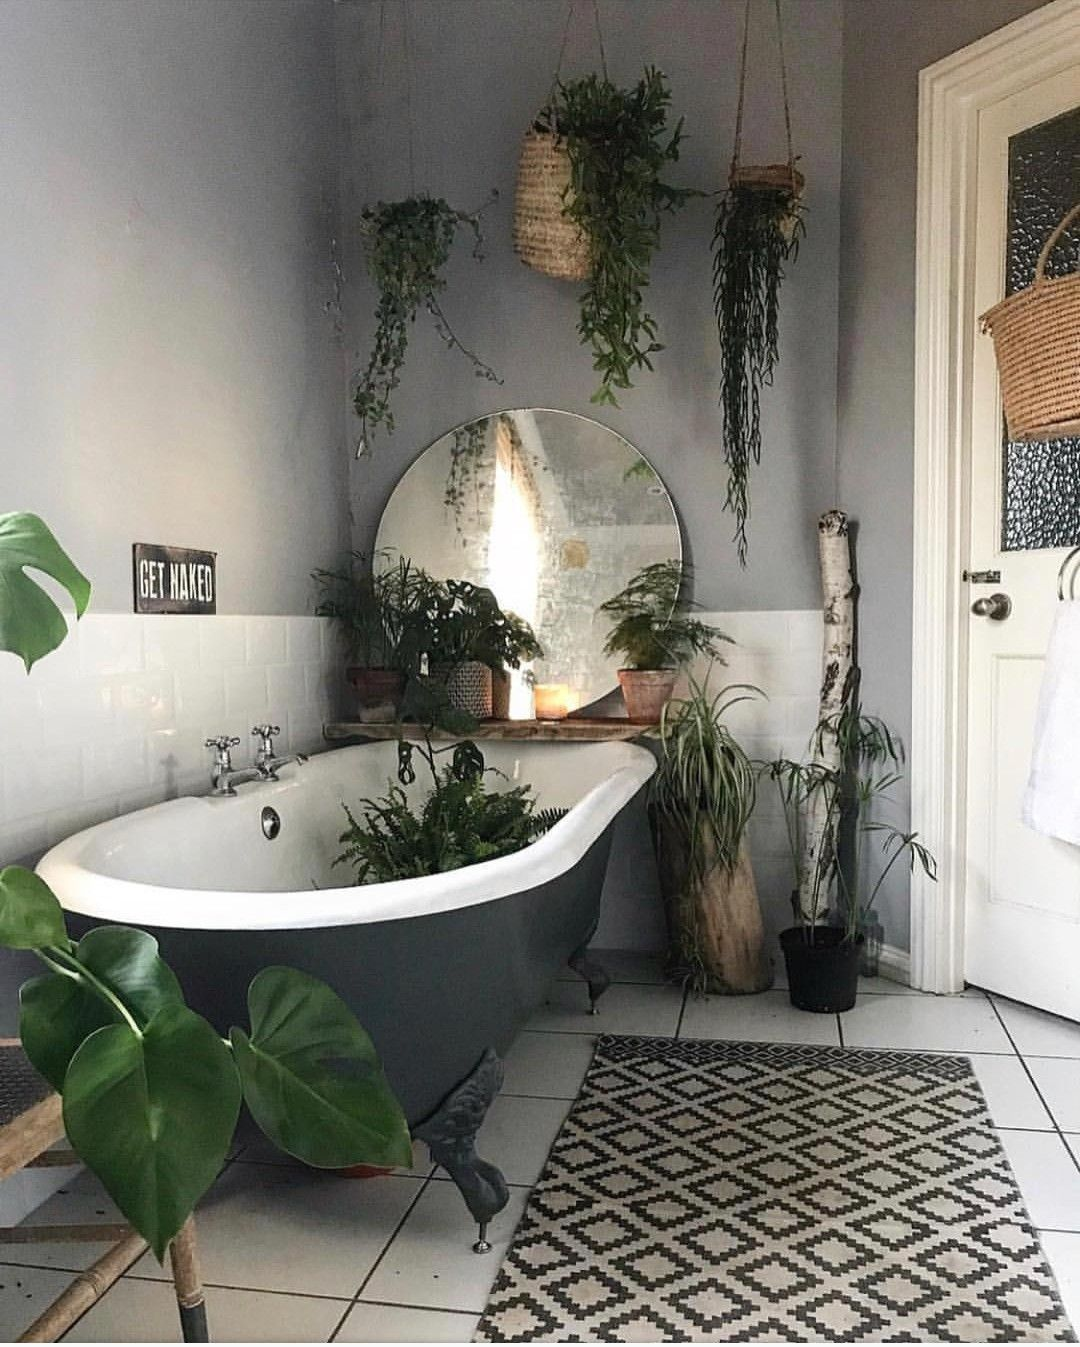 Pin By Amalia Lazarciuc On Arch And Interiors